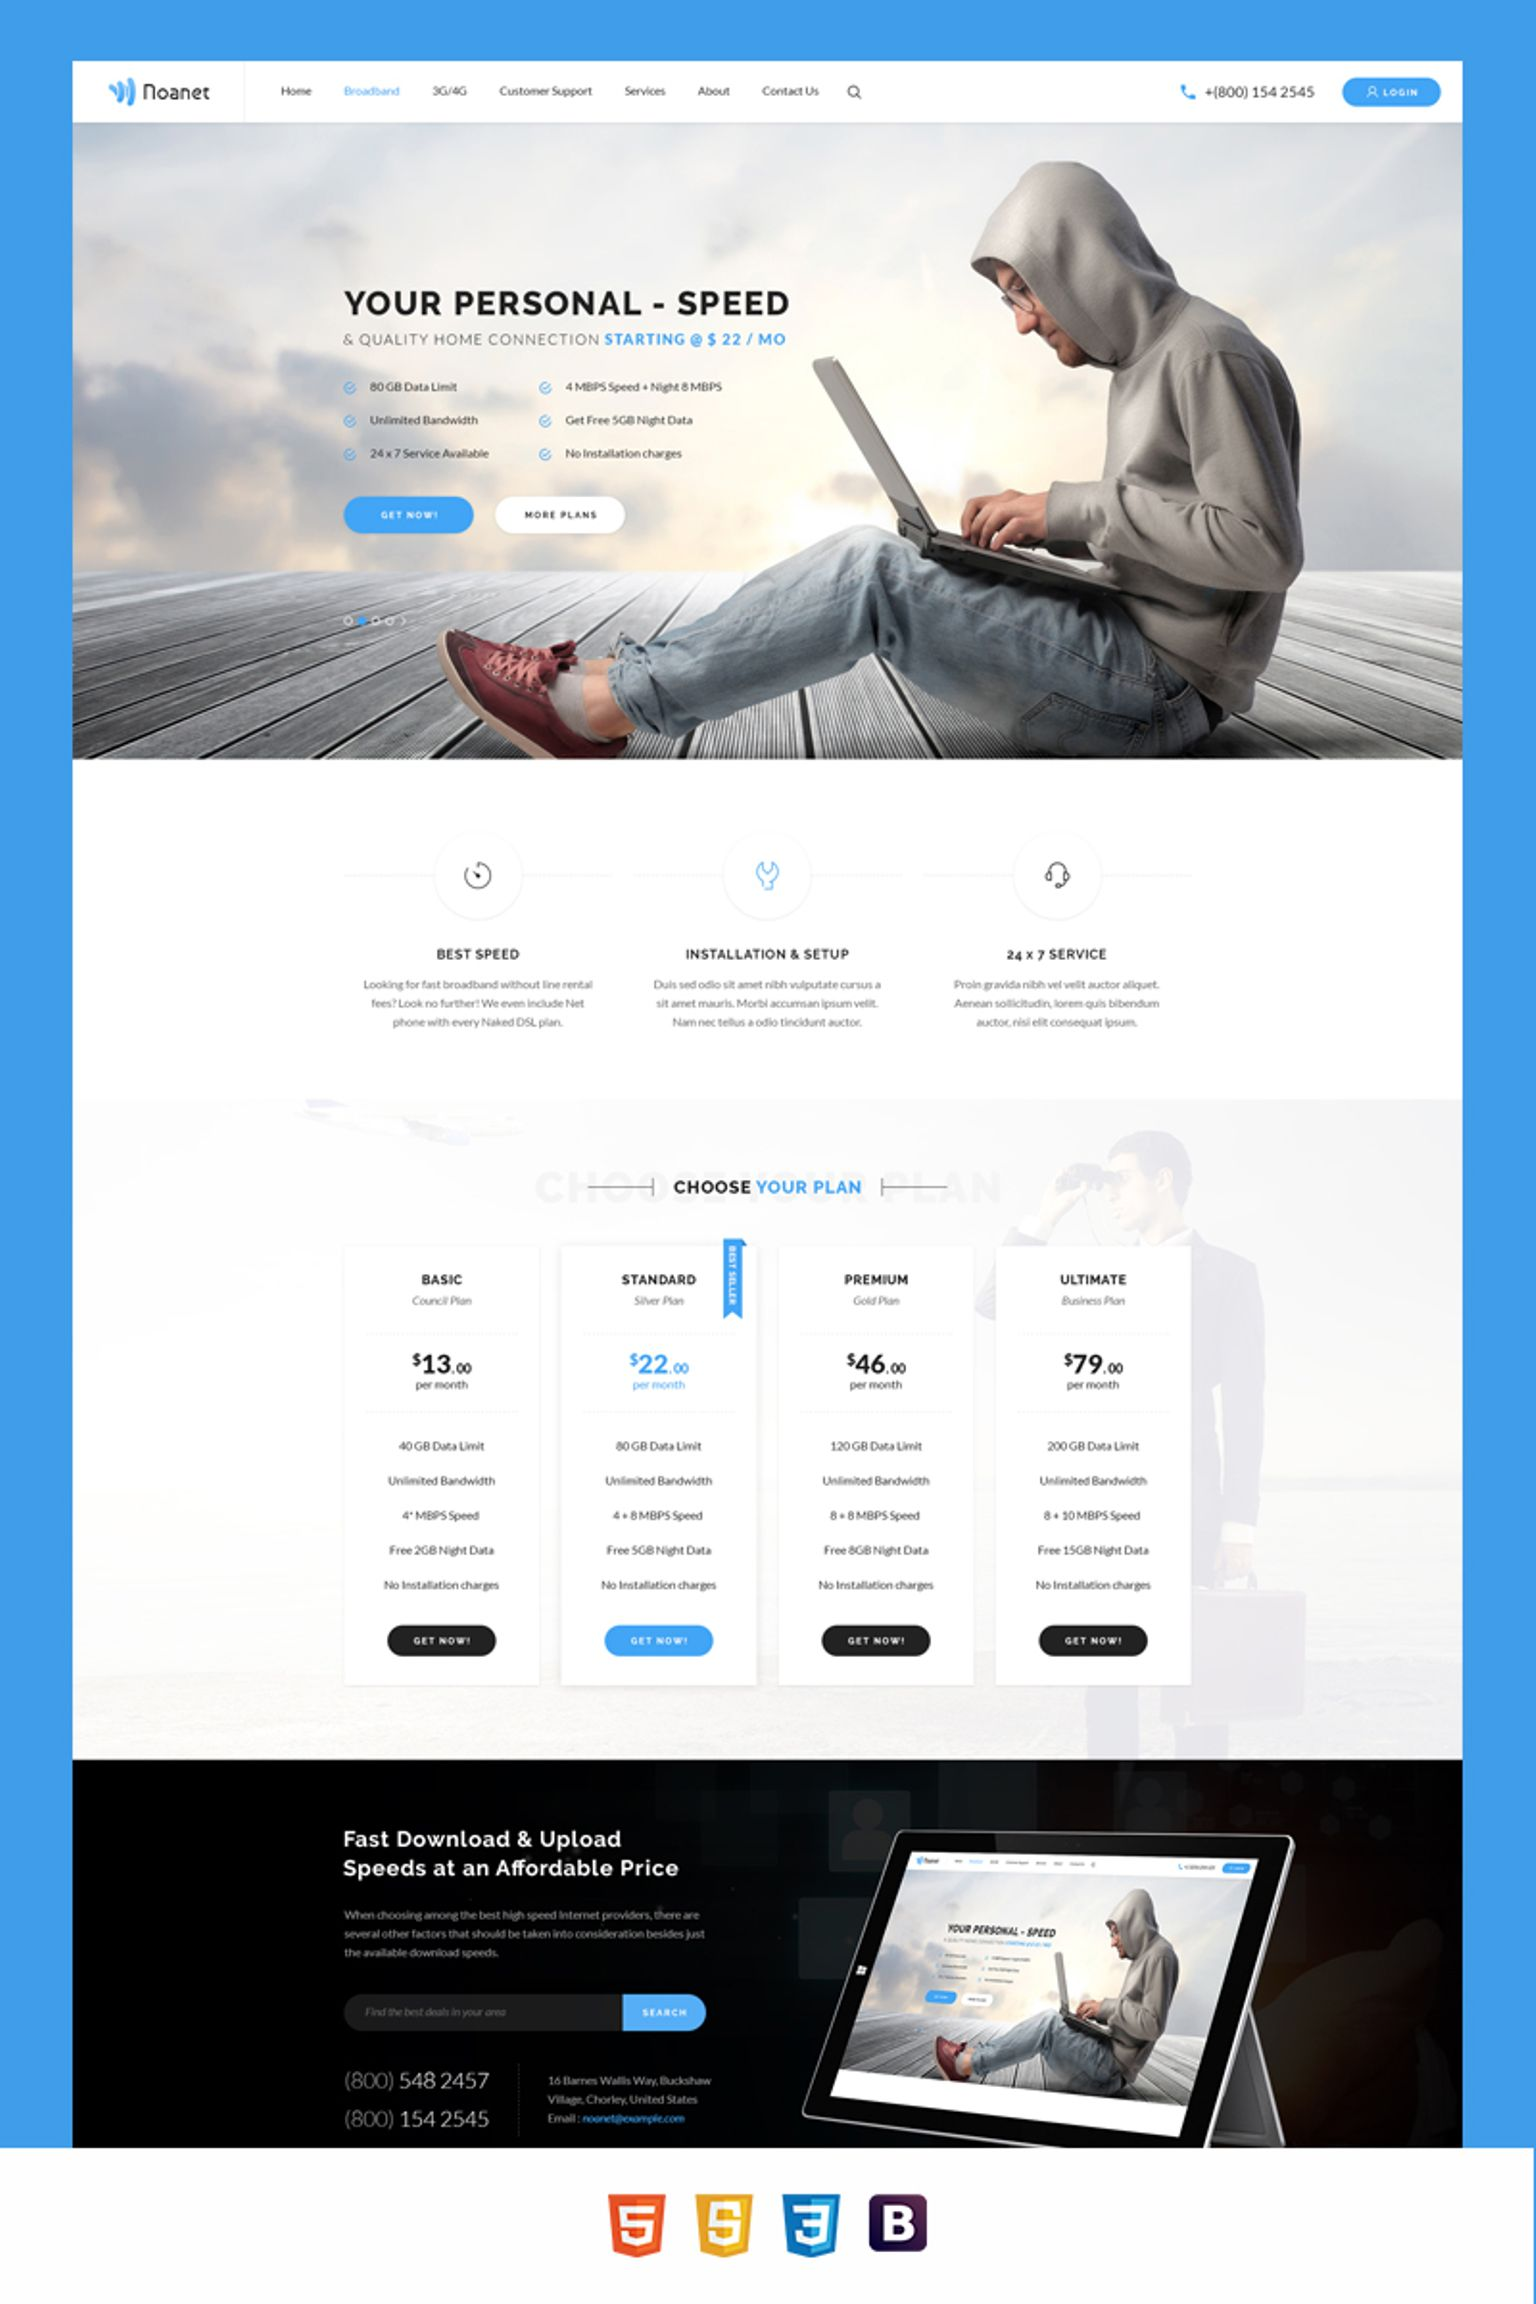 Noanet Internet Provider and Digital Network HTML Template Website Template